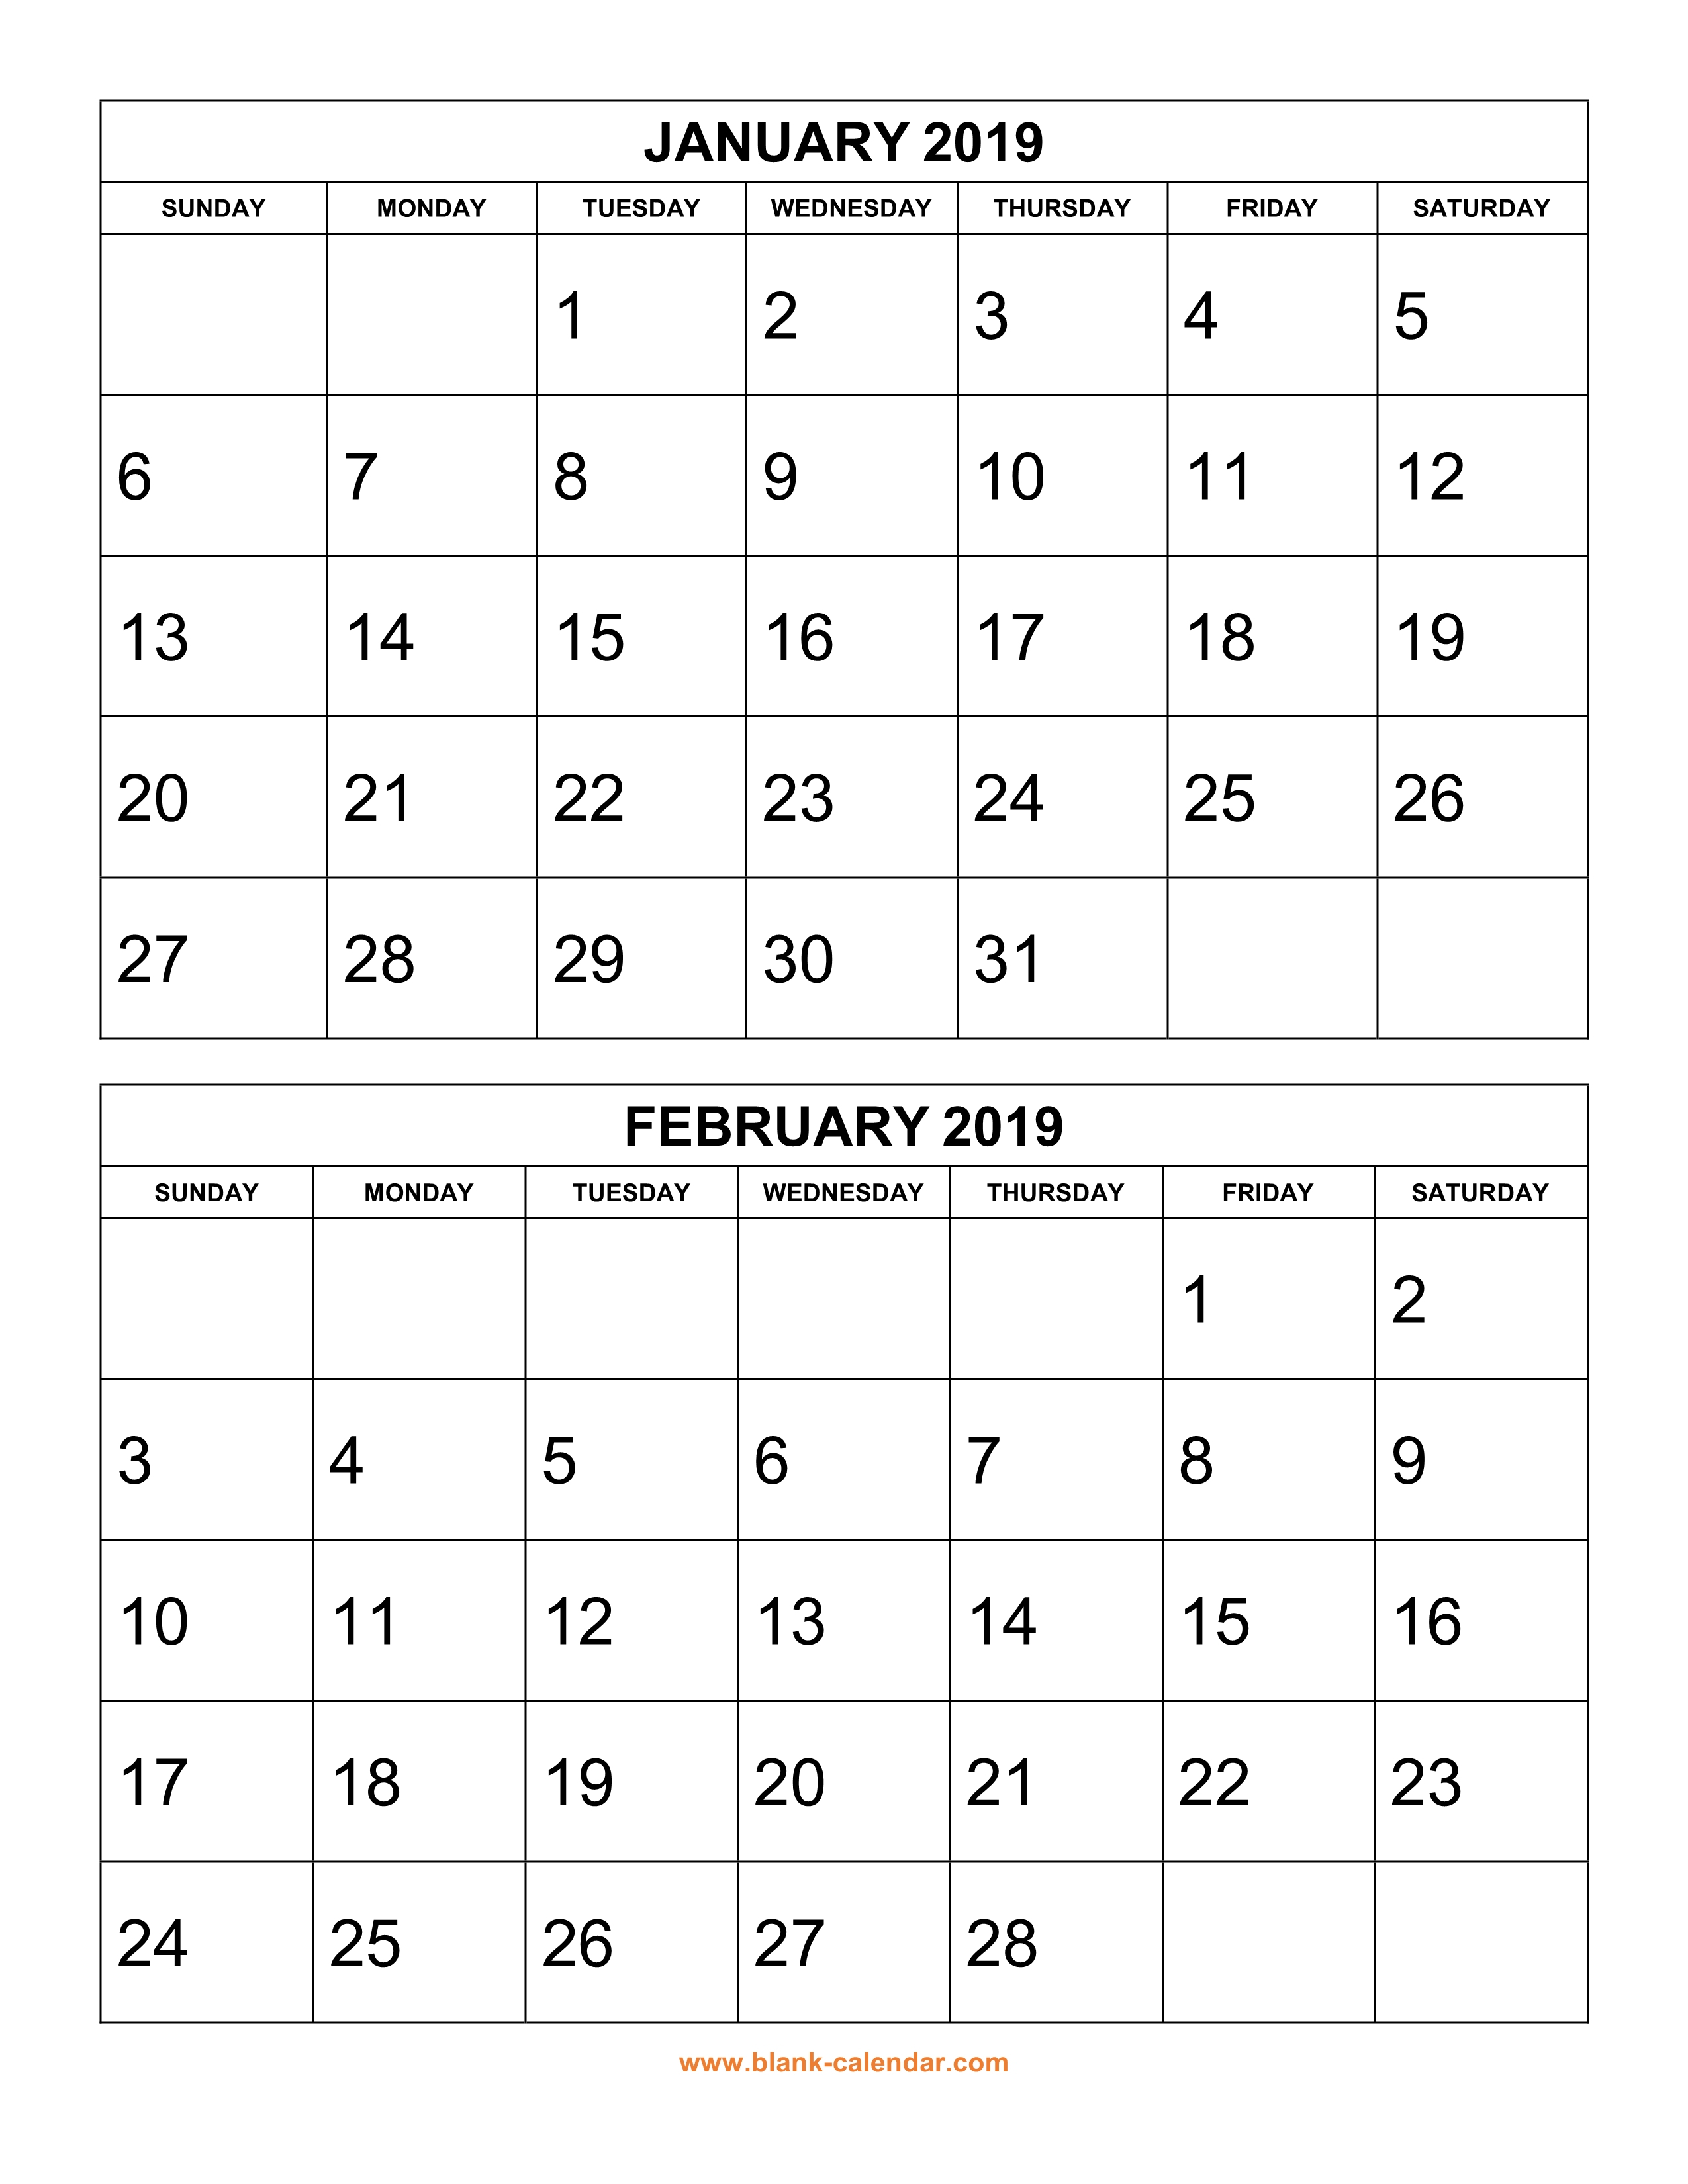 Free Download Printable Calendar 2019, 2 Months Per Page, 6 Pages throughout Printable Month To Month Clalanders Wityh Lines 2019/2020